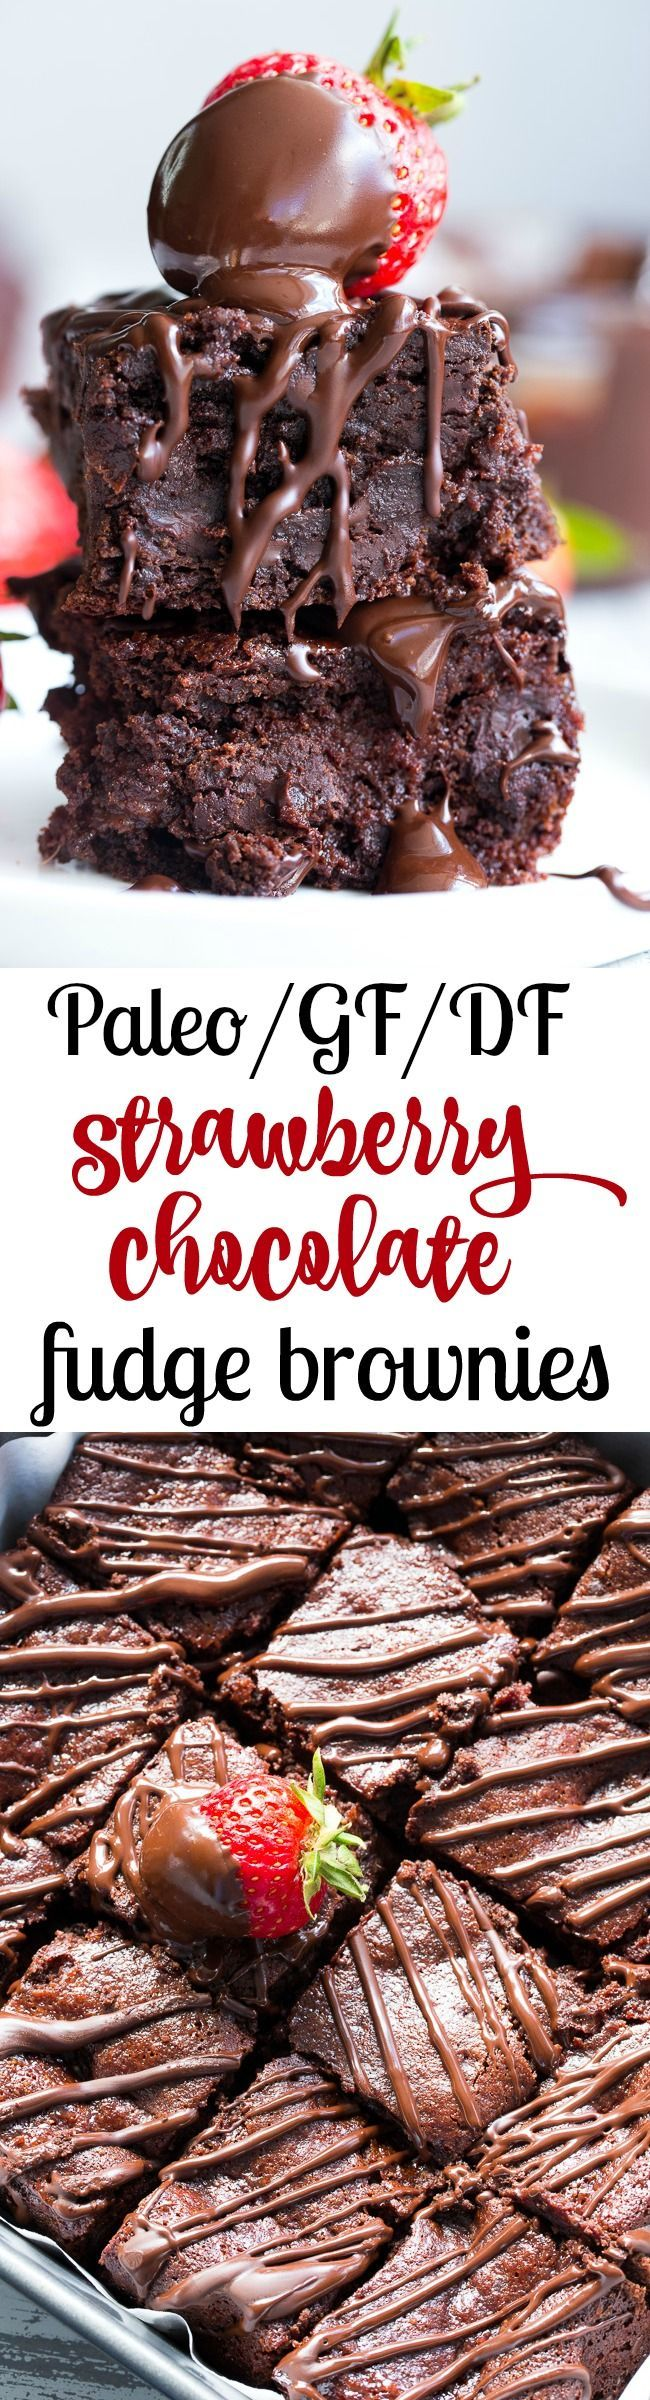 These fudgy paleo brownies are layered with easy homemade strawberry preserves and drizzled with more dark chocolate for the ultimate decadent (but healthy!) dessert.  They're grain free, dairy free, gluten free with a refined sugar free option.